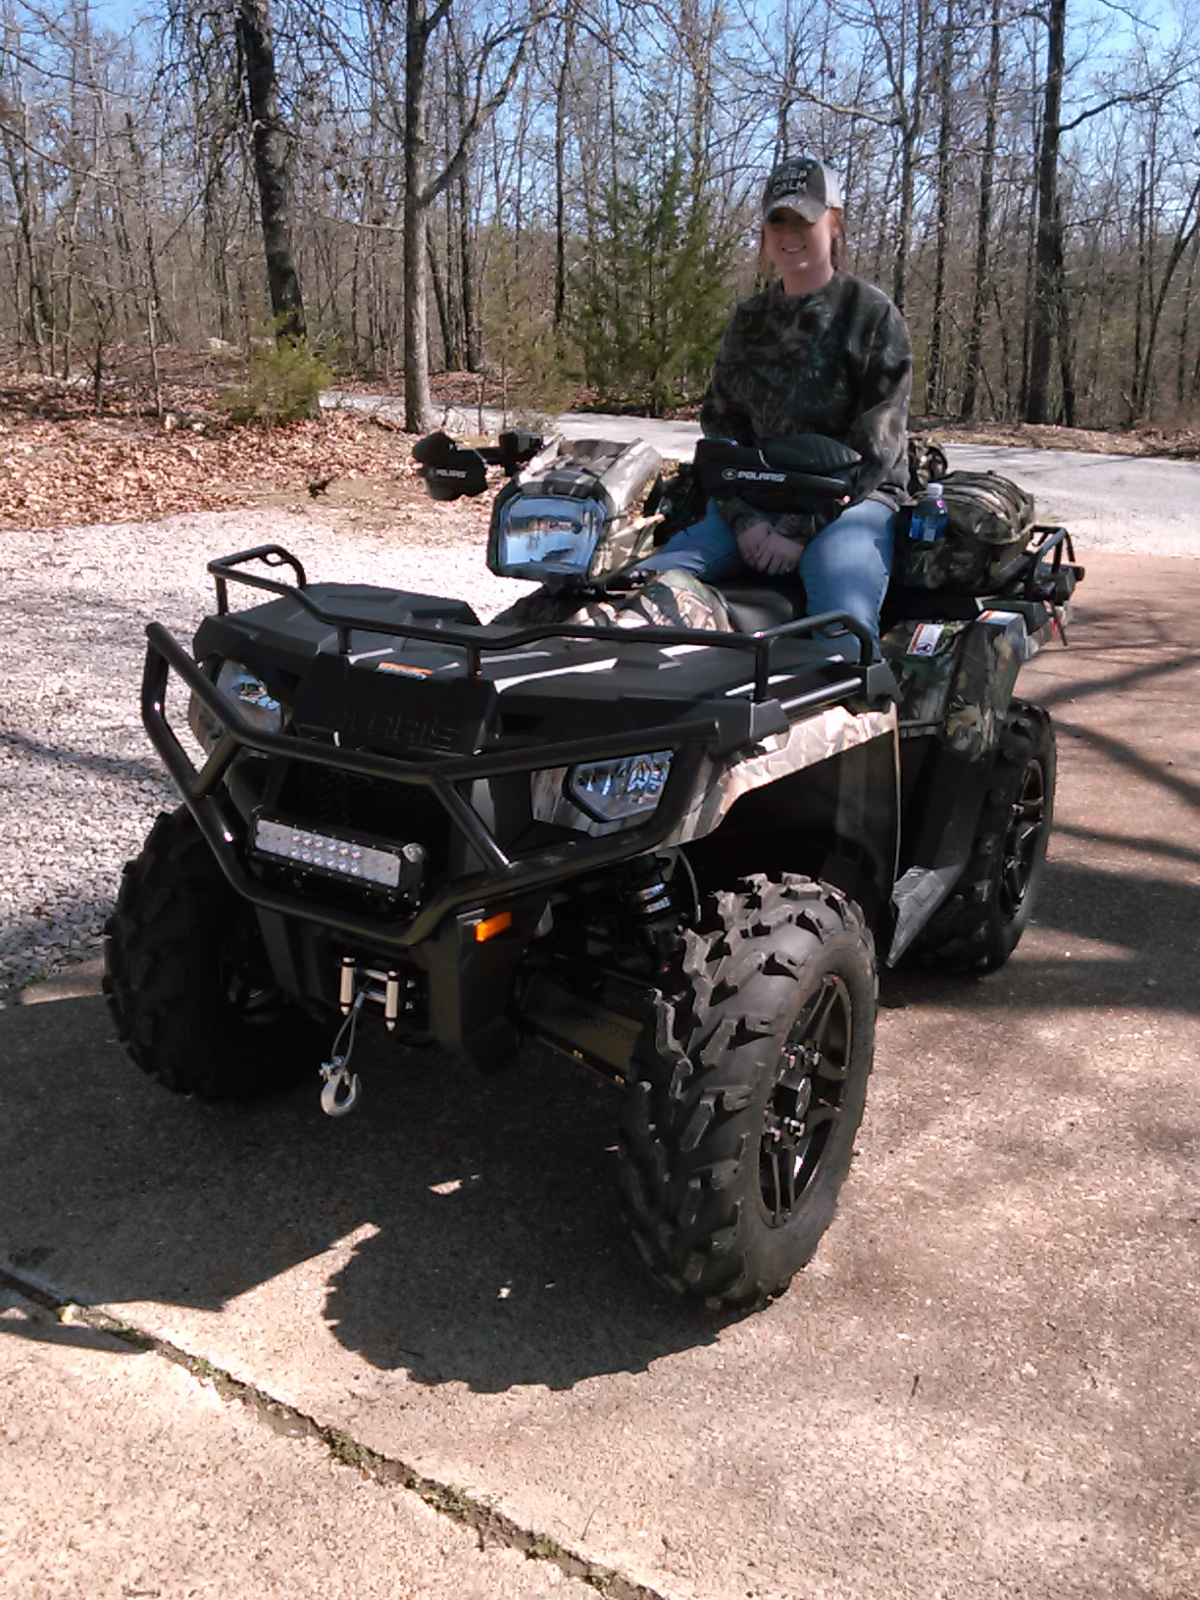 My full review on the 2015 Polaris Sportsman 570 SP Hunter